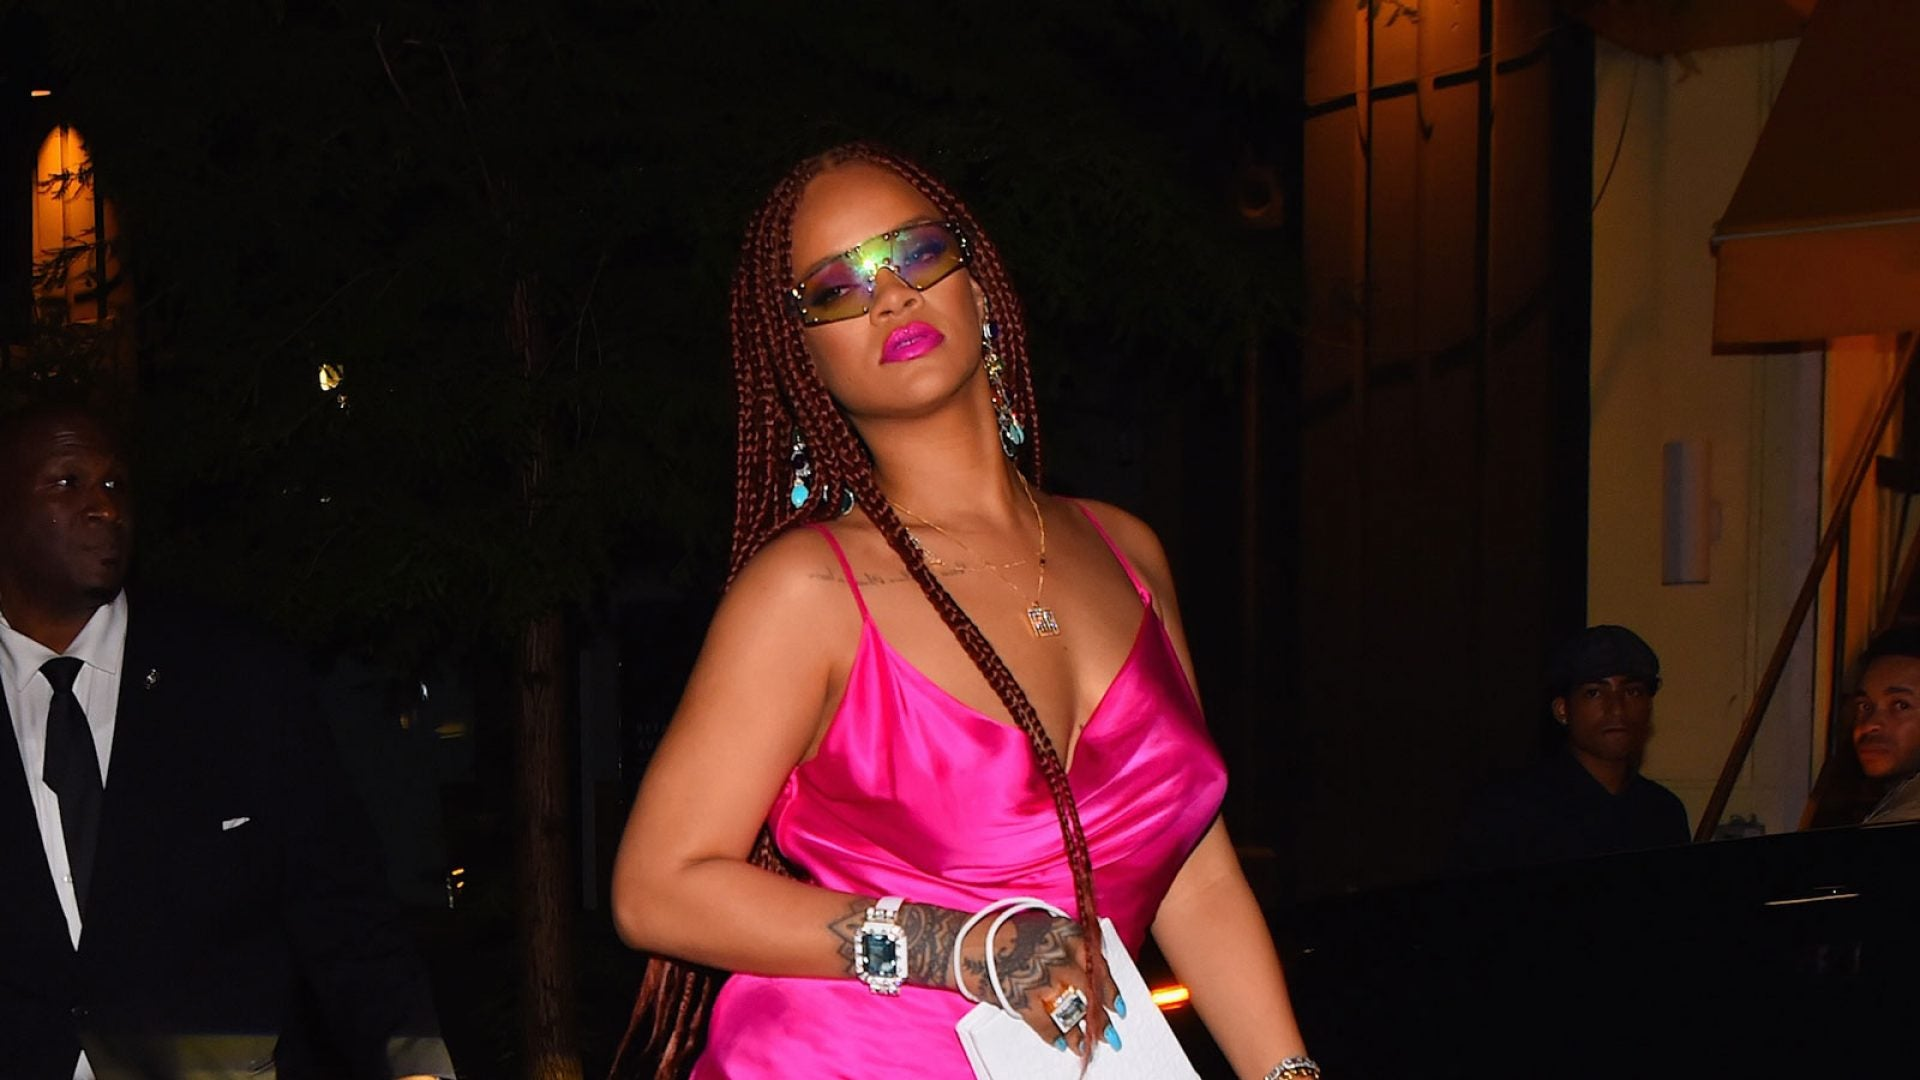 15 Of Rihanna's Best Fashion Moments From The Past Year